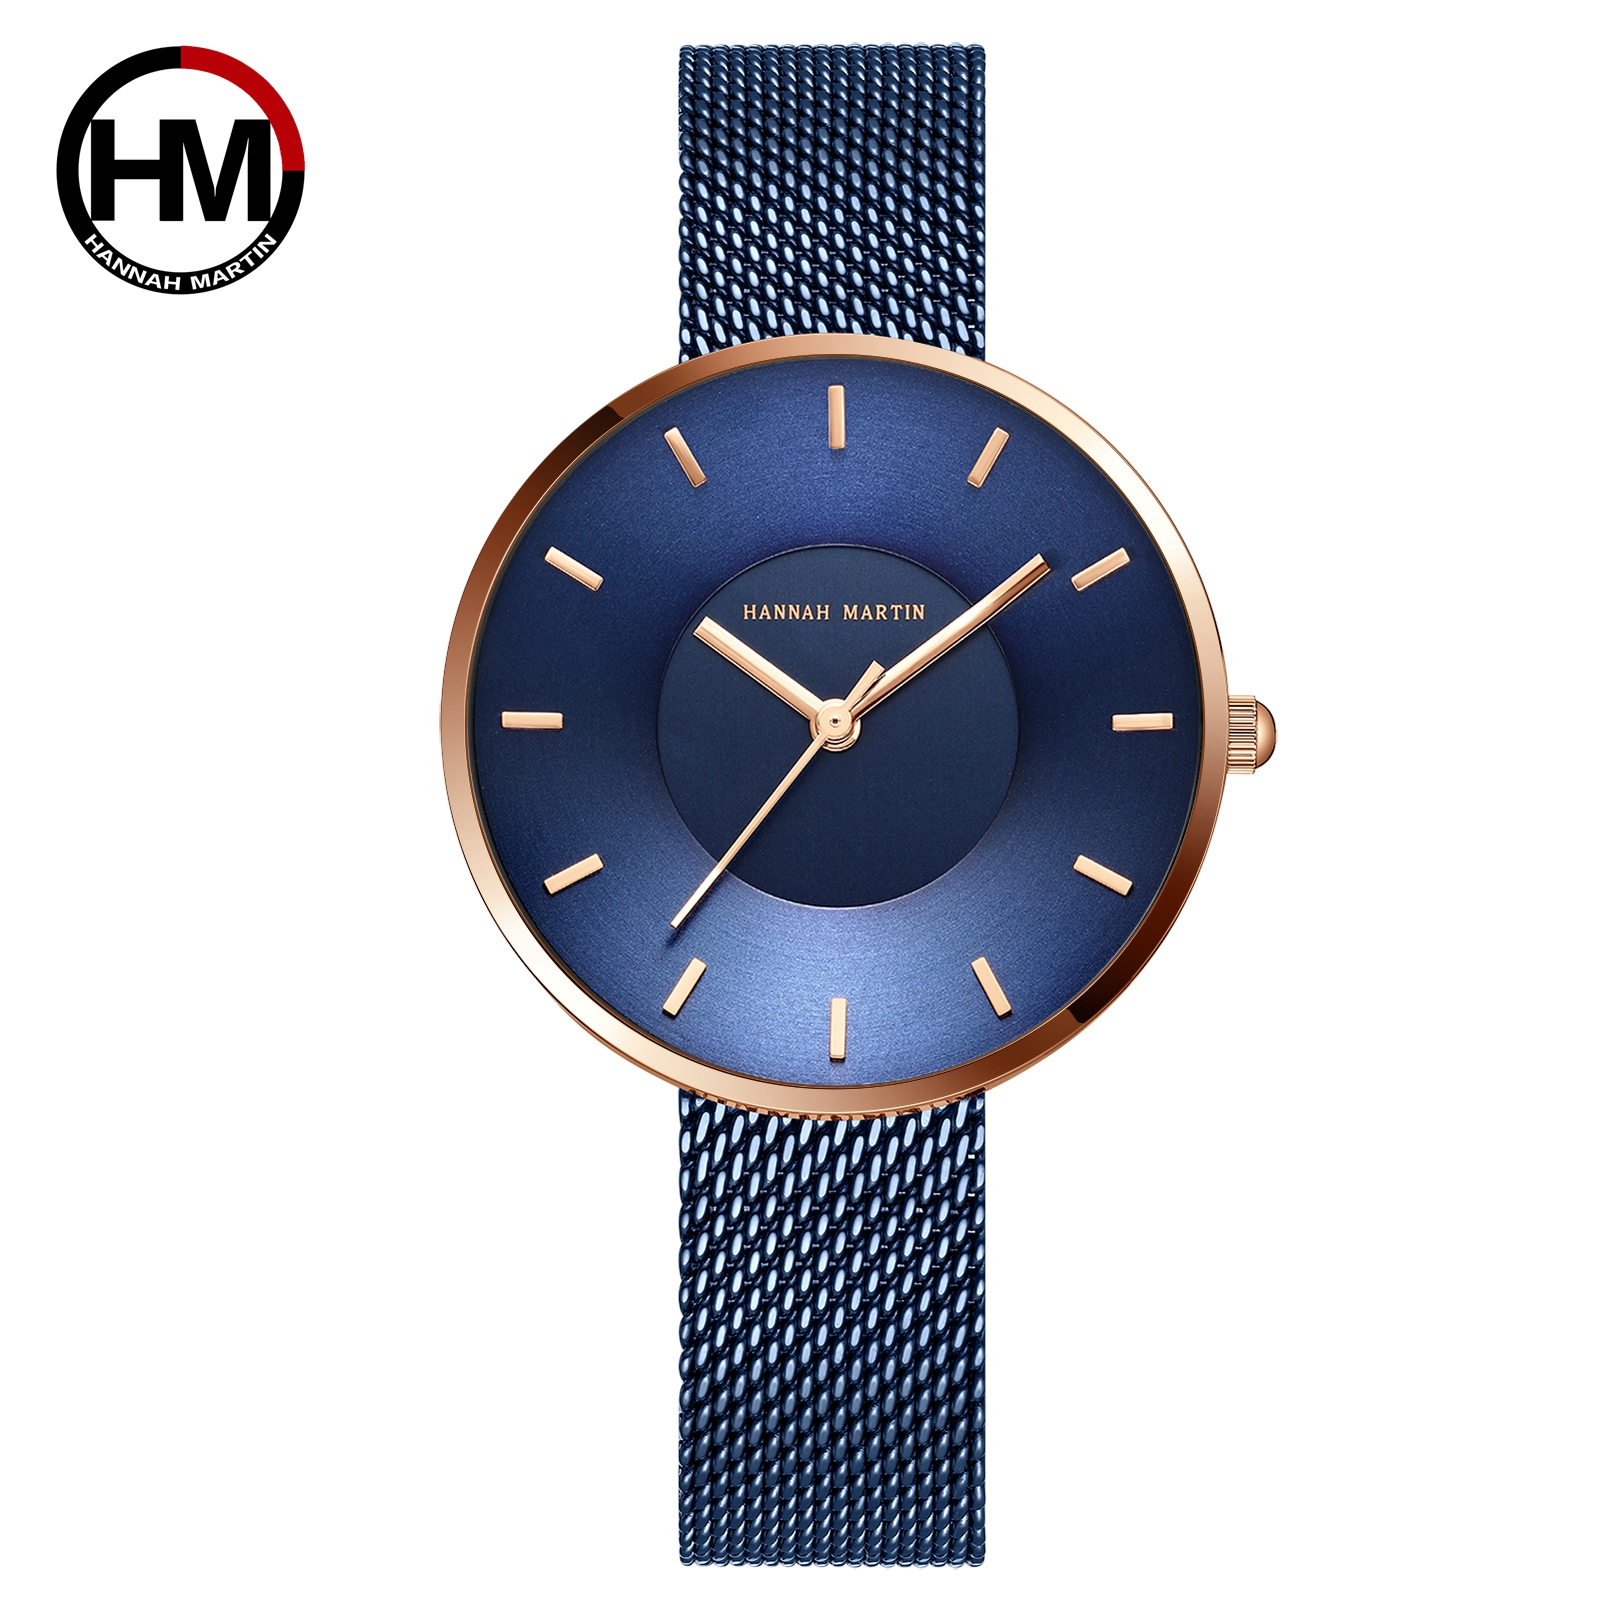 JAPAN MIYOTA 2035 Quartz Movement Simple Design Luxury Gift Stainless Steel Band Curved Face Blue Rose Gold Watches For Women